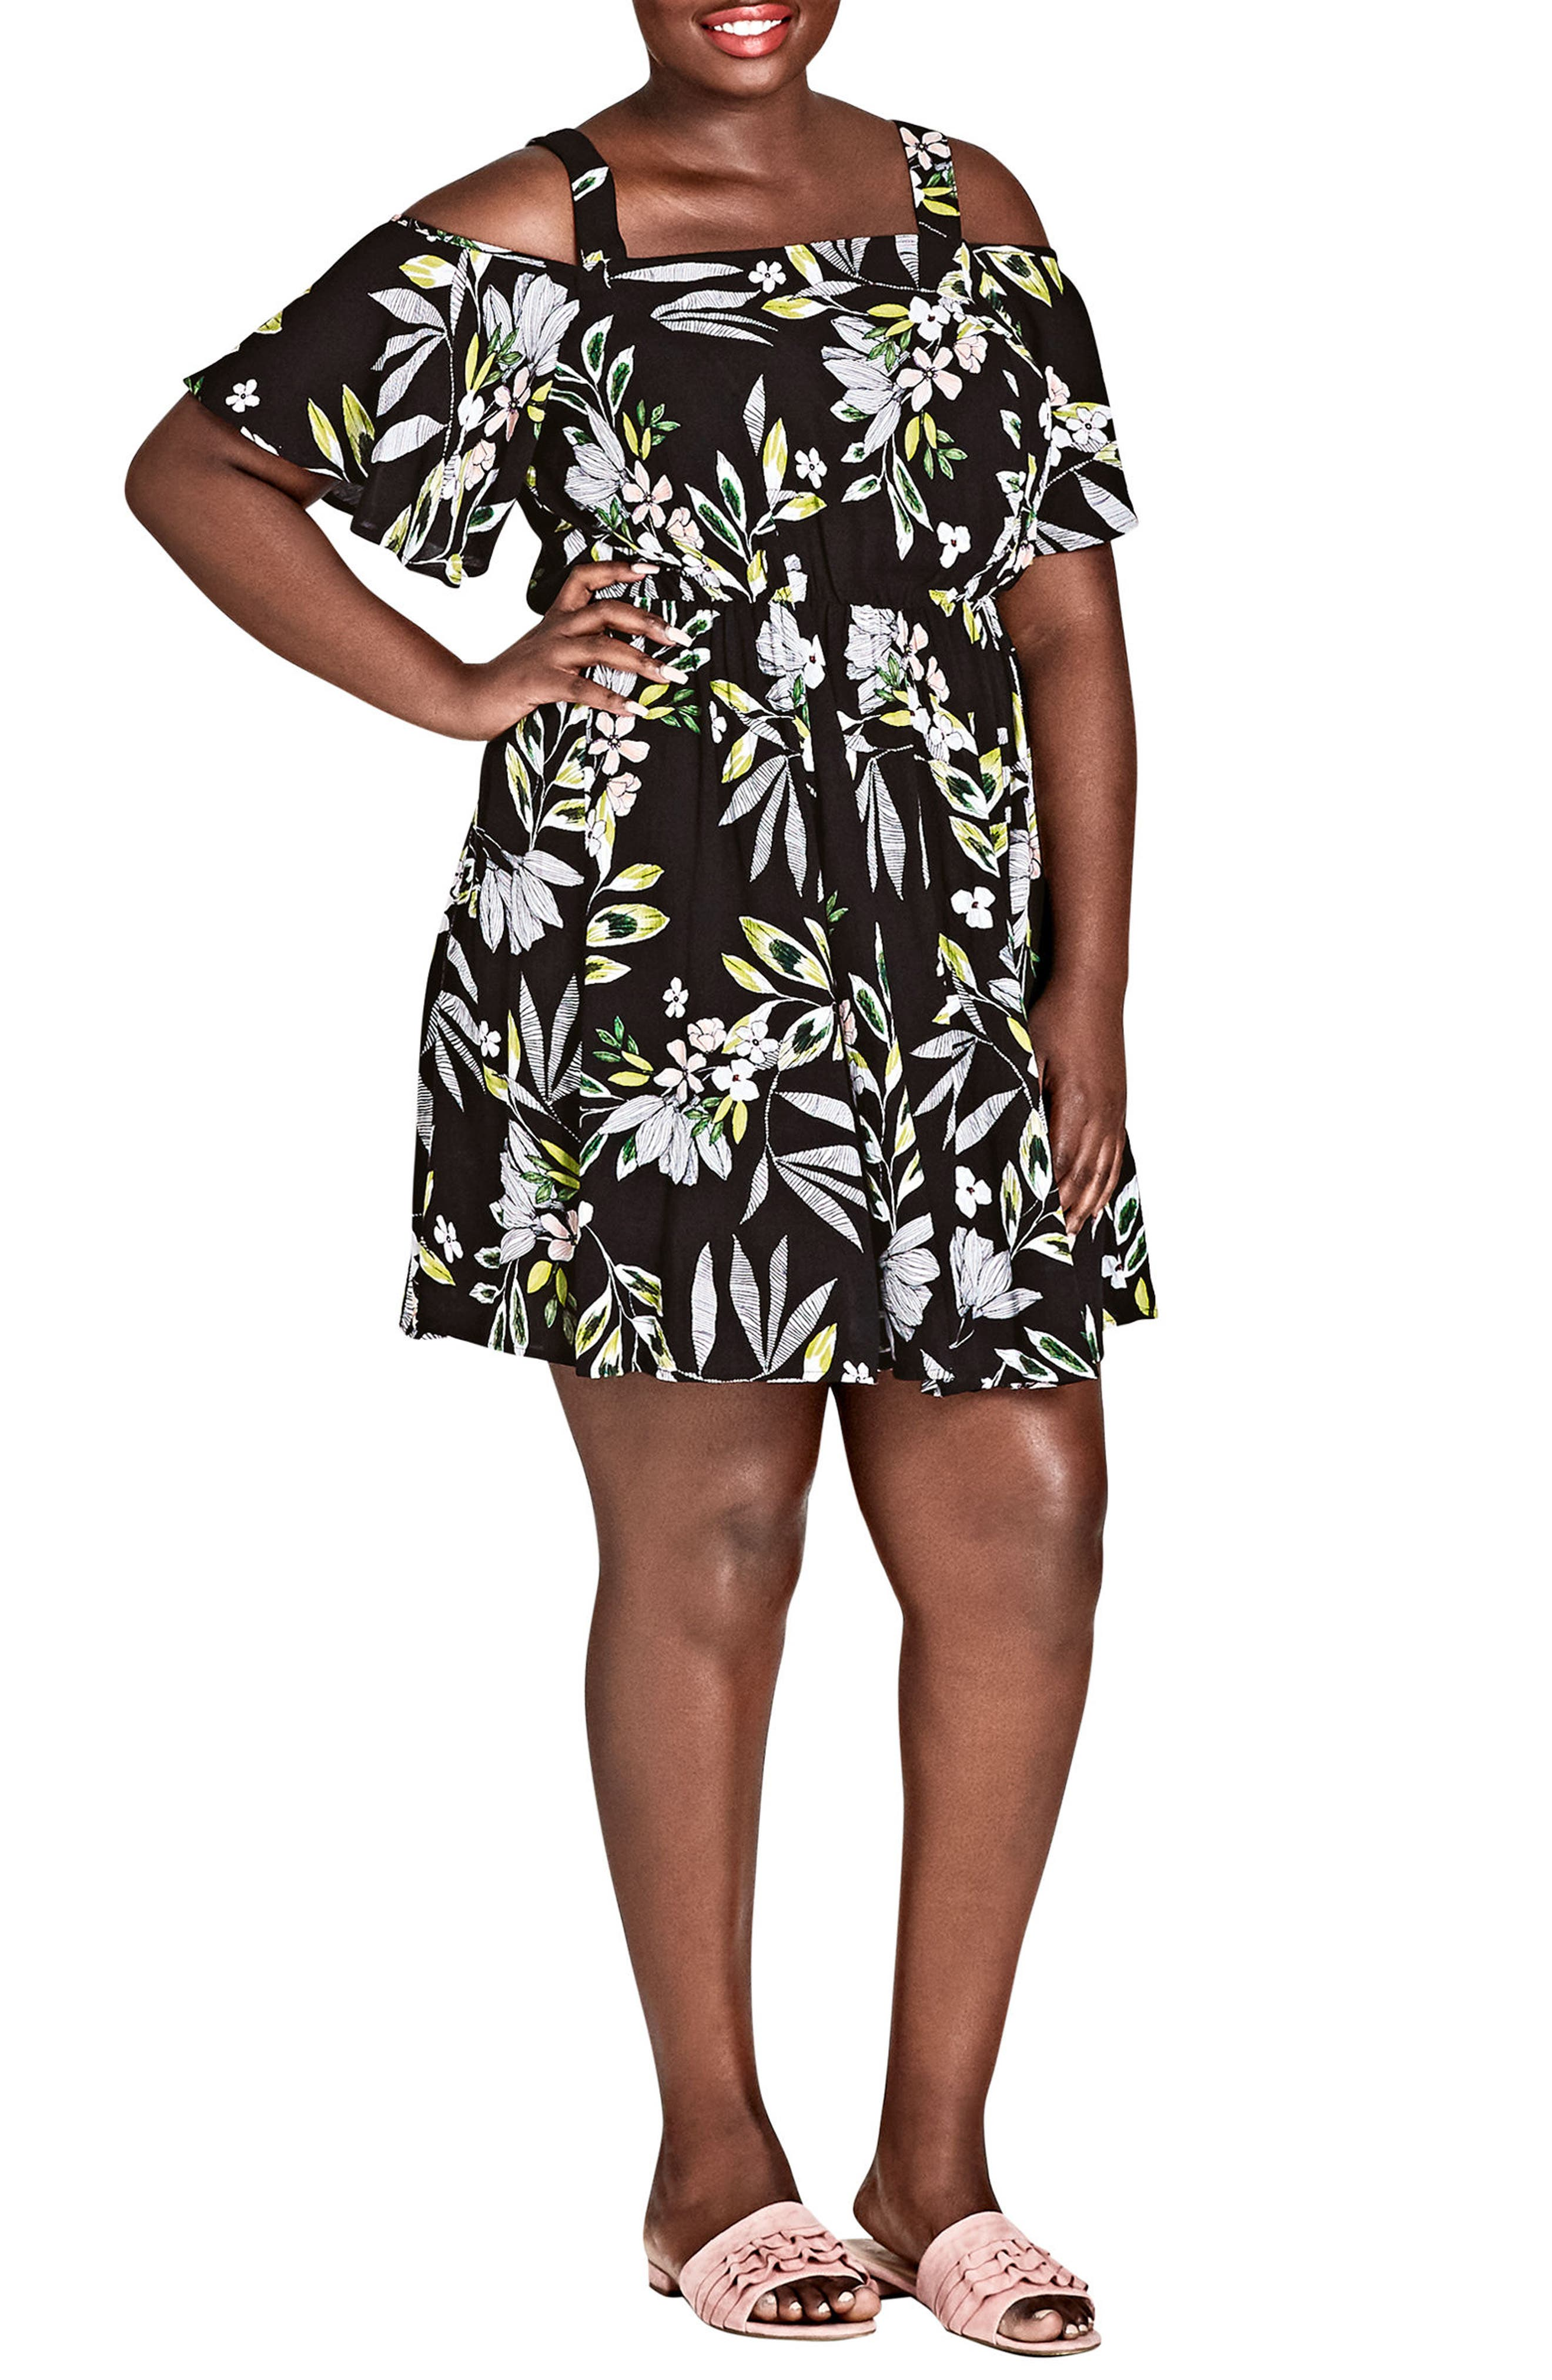 Maui Floral Cold Shoulder Dress,                         Main,                         color, MAUI FLORAL